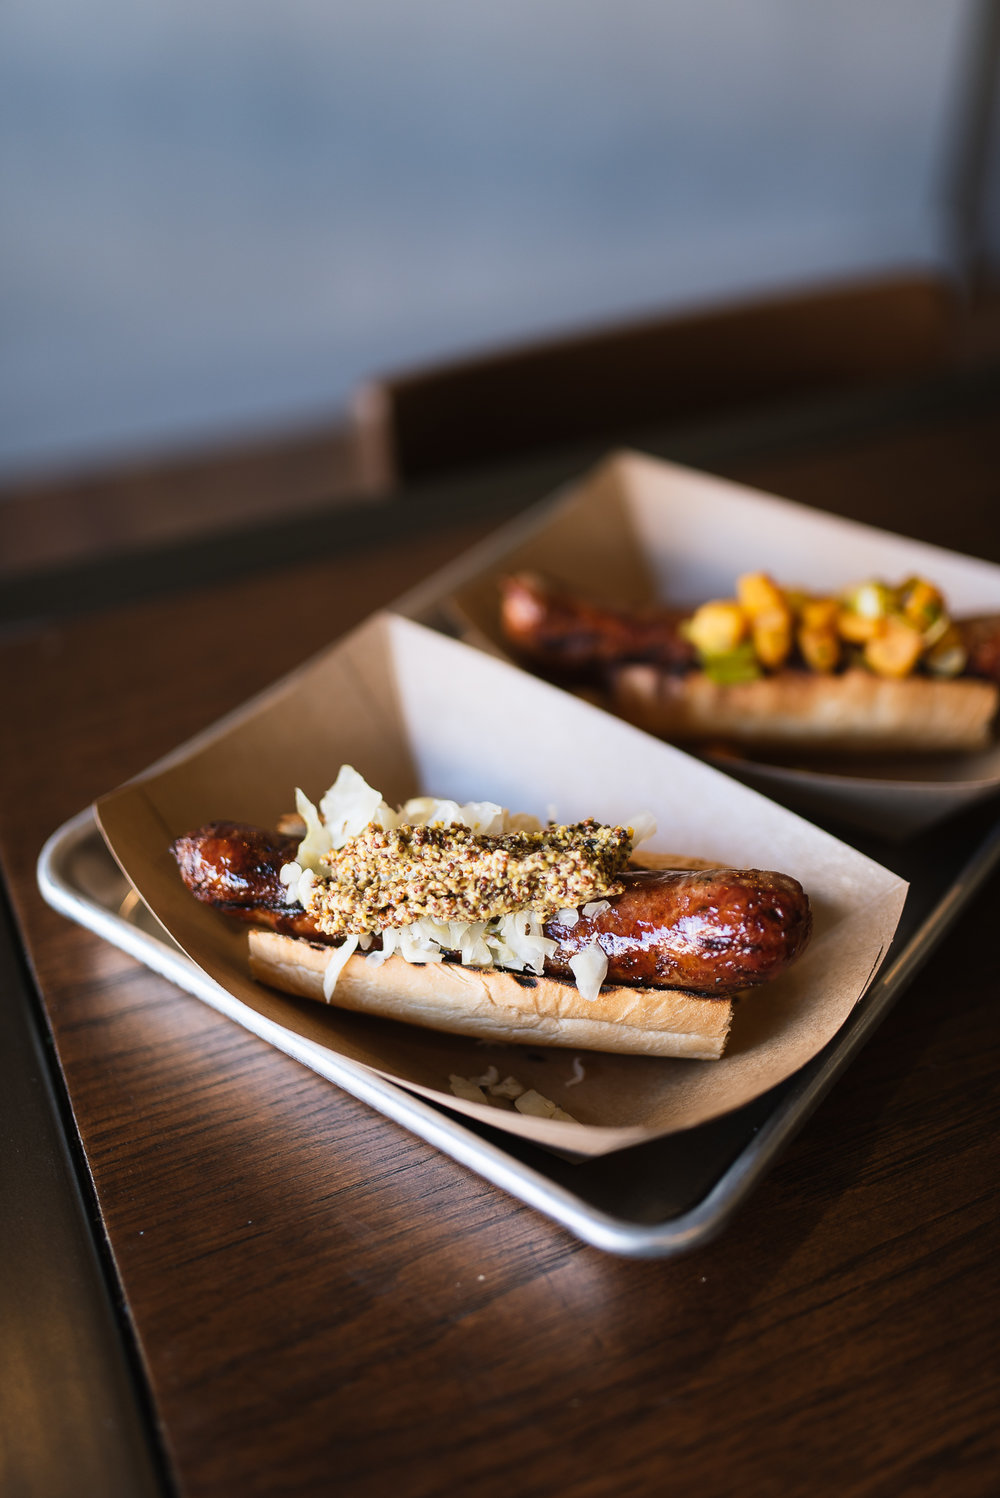 Beer brat - sauerkraut, coarse ground mustard